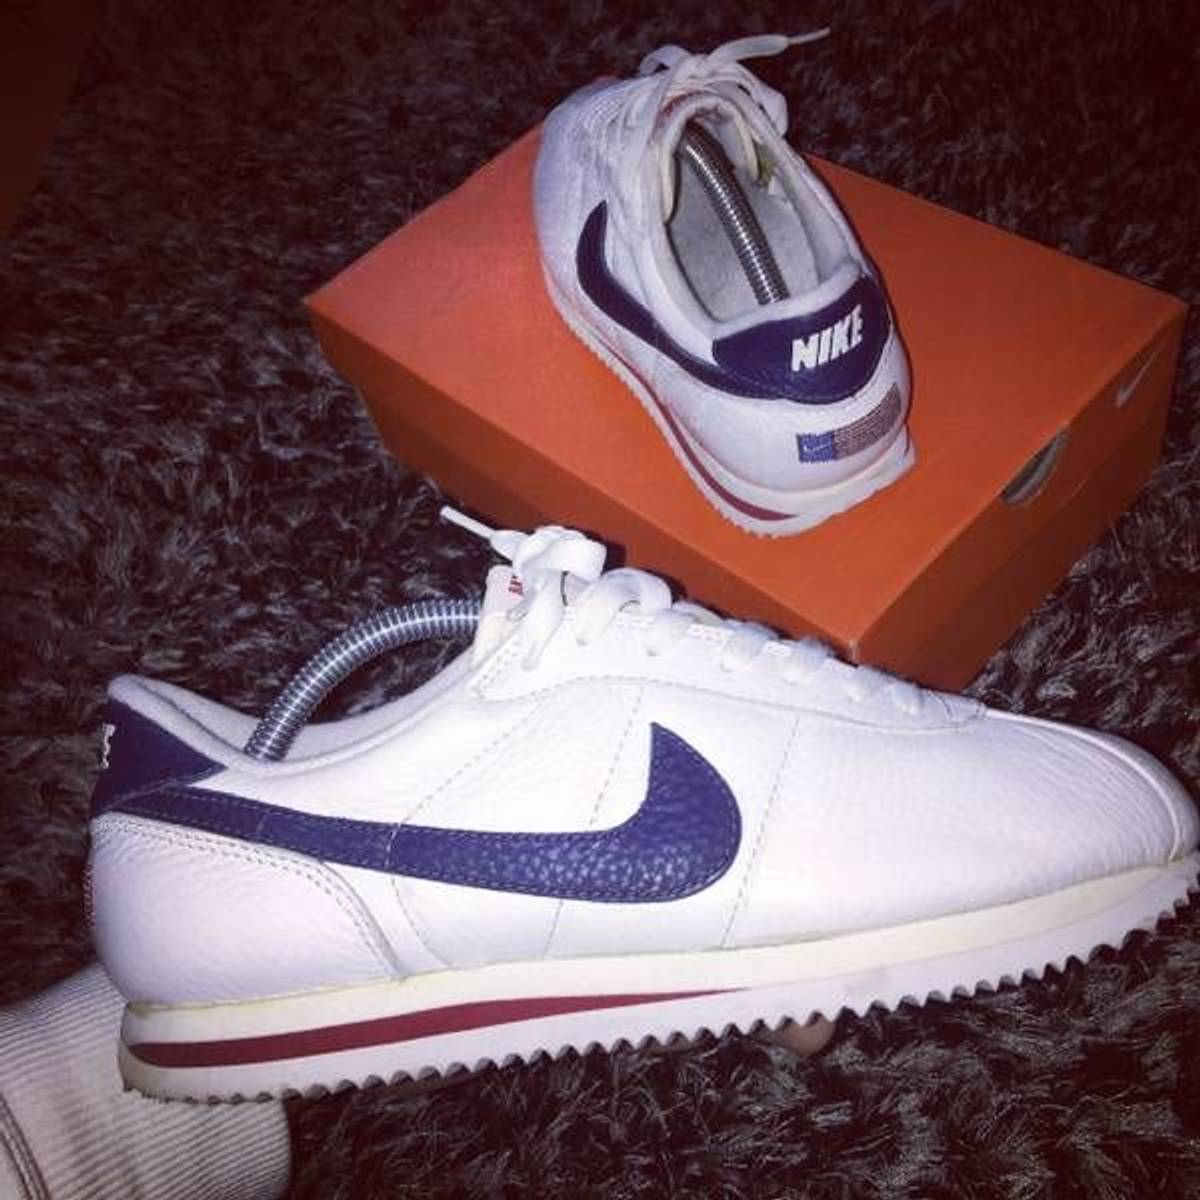 huge discount 6c8da f666d ... Nike Cortez Atlanta Olympics 1996 8.5US 42EU 7.5UK (fit small) - photo  ...